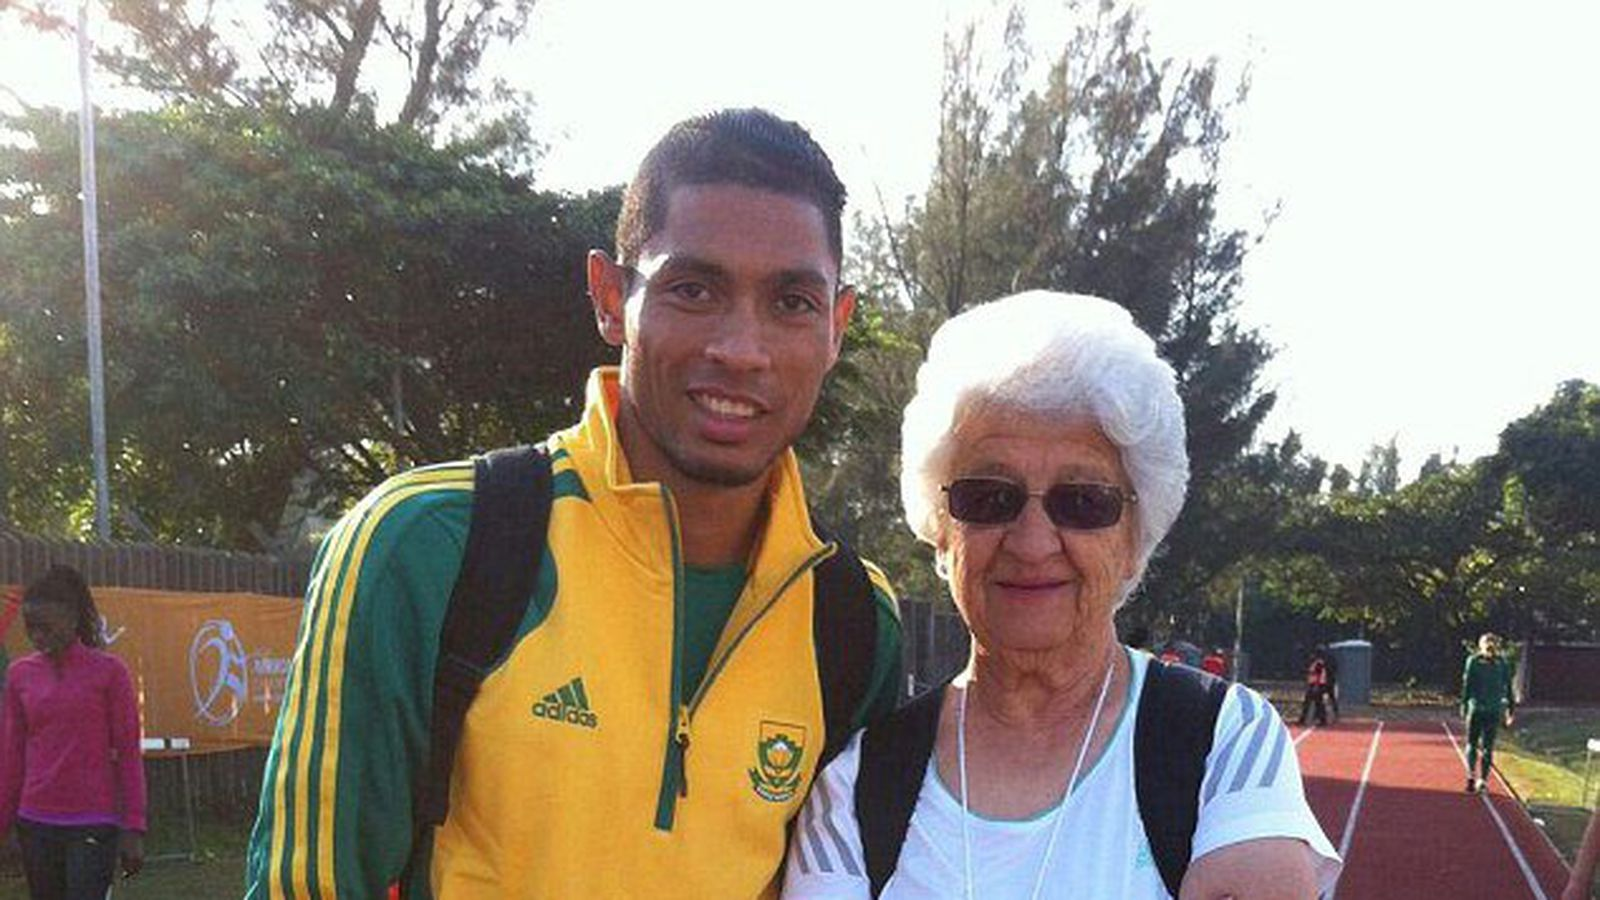 """Wayde van Niekerk (l) and Anna """"Tannie Ans"""" Botha (r) have formed a remarkable relationship, both professionally and personally, that has catapulted the young sprinter to athletics royalty."""